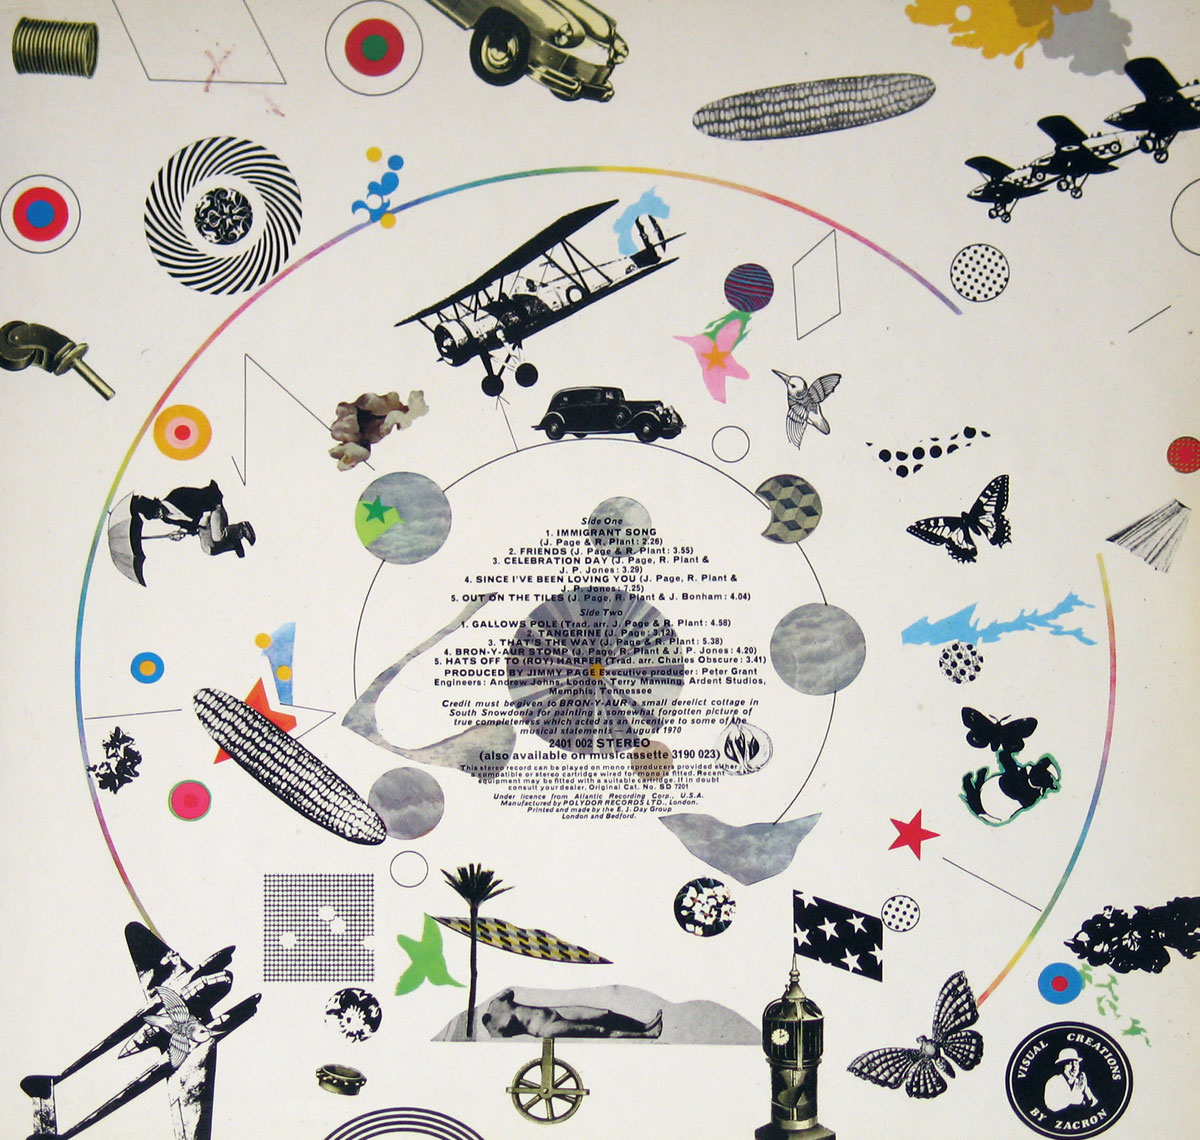 High Resolution Photo of Led Zeppelin III Spinning Wheel acover  LP